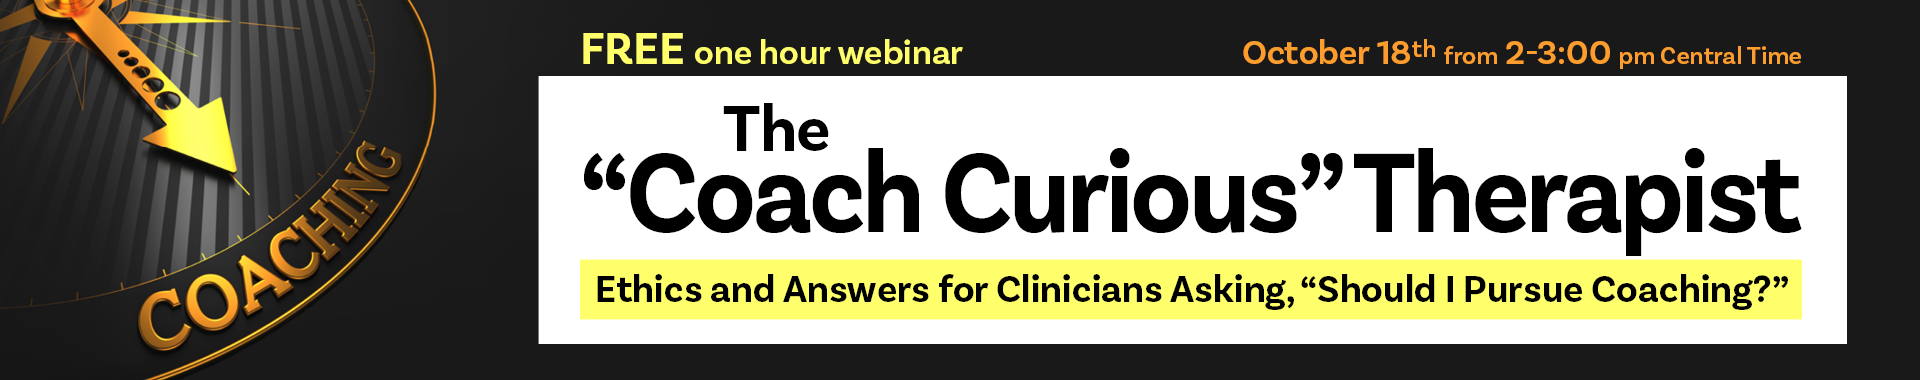 """The """"Coach Curious"""" Therapist: Ethics and Answers for Clinicians Asking, """"Should I Pursue Coaching?"""""""